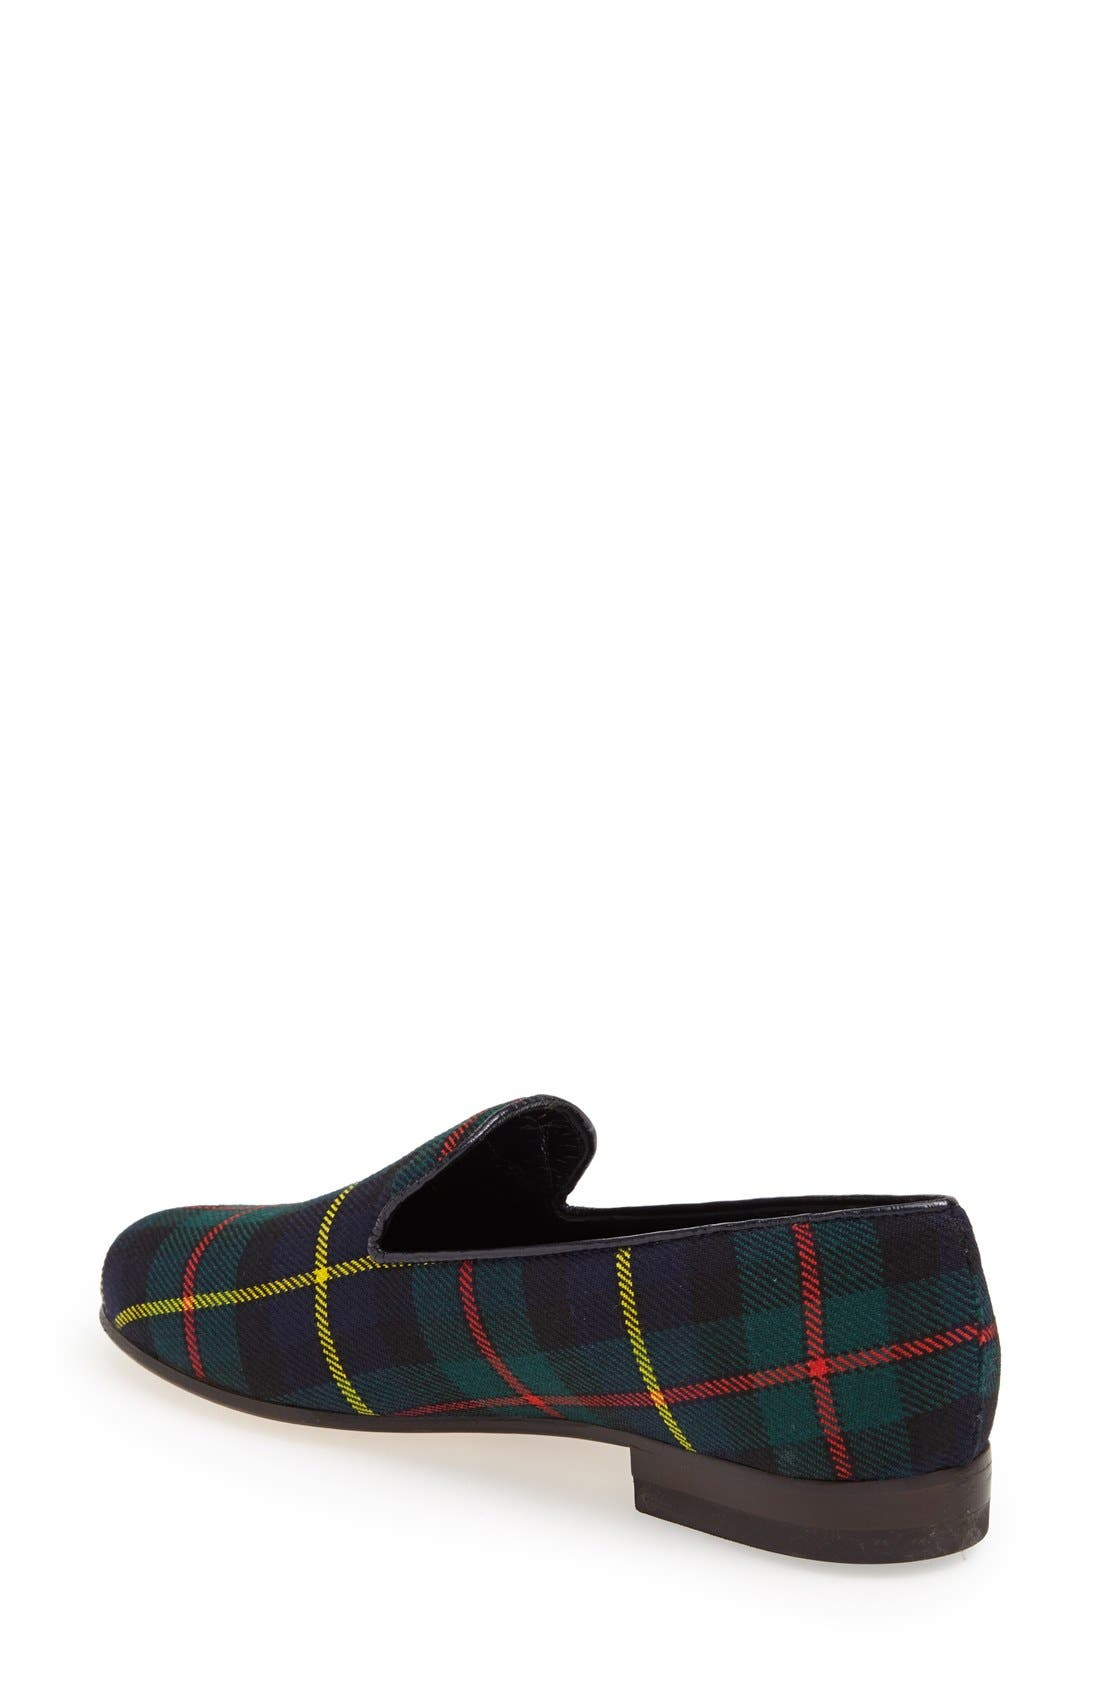 Alternate Image 2  - CB Made in Italy Plaid Smoking Loafer (Women)